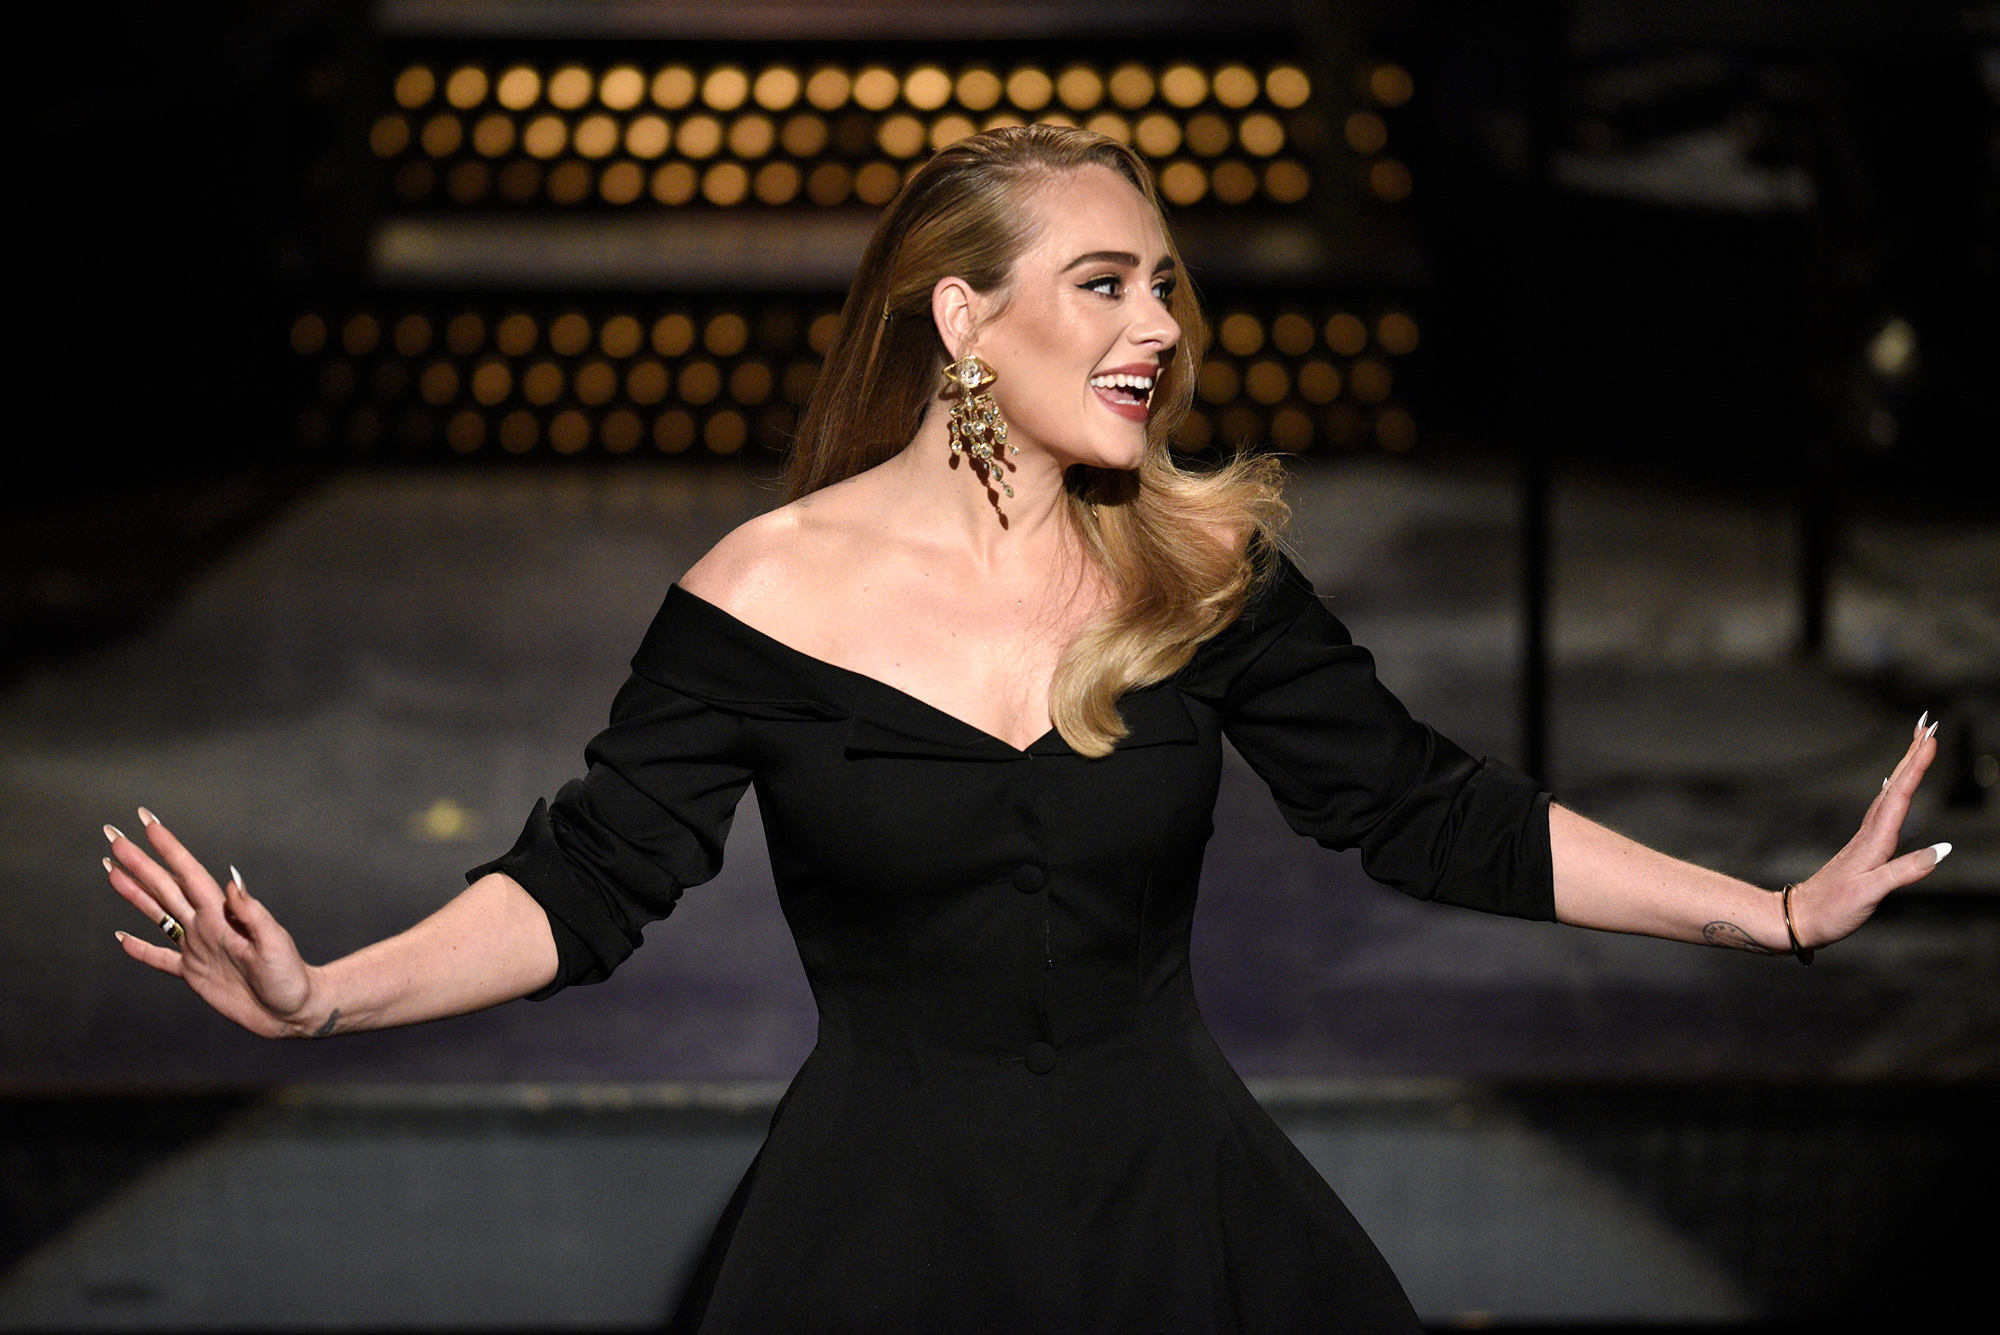 Adele and Boyfriend Rich Paul Go Instagram Official in New Photo